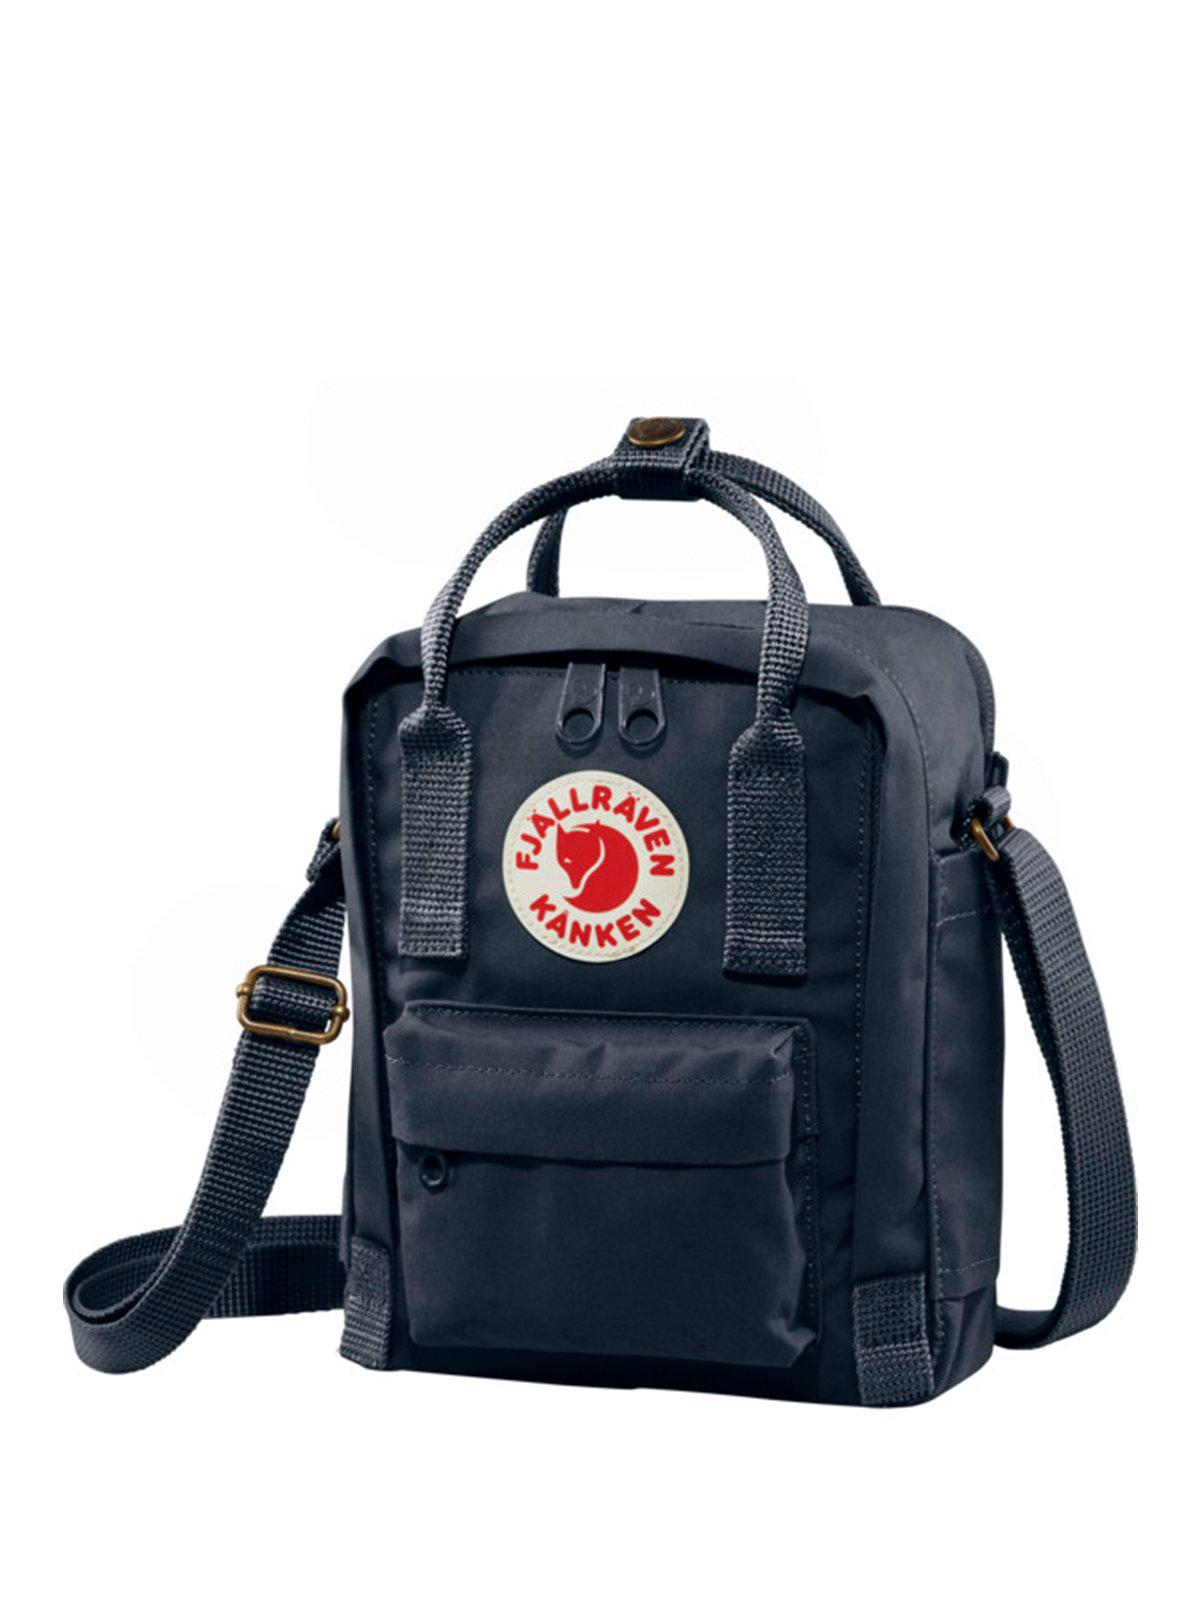 Fjallraven Kanken Sling Bag Navy - MORE by Morello Indonesia